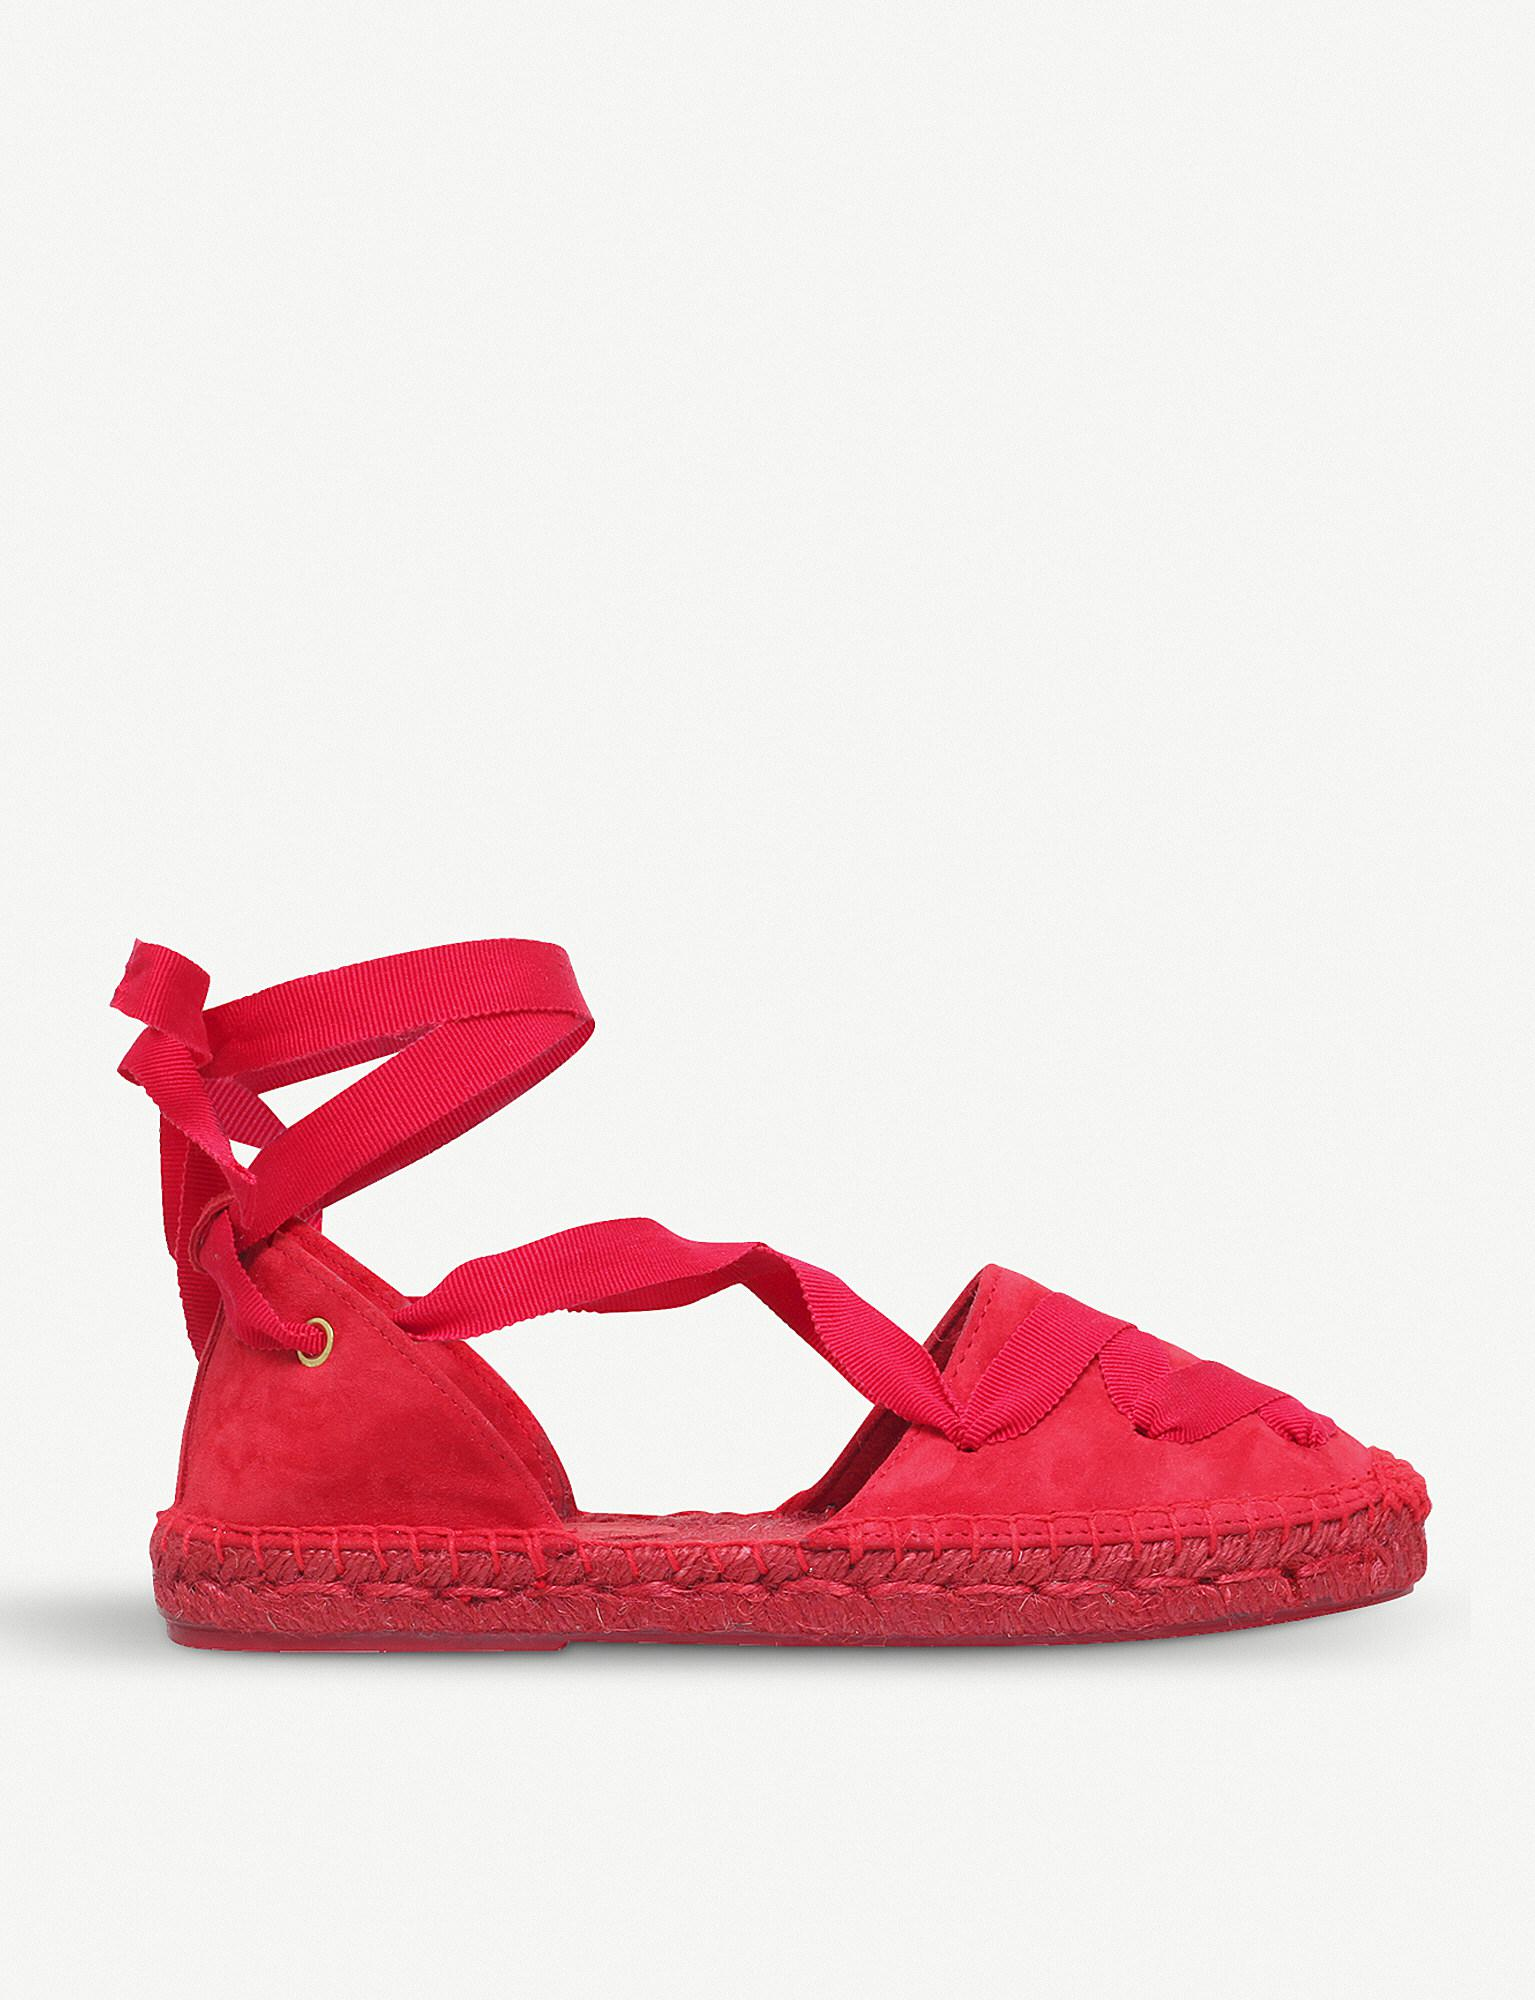 Kurt Geiger Margo Espadrilles outlet with paypal order cheap low shipping U6m77k